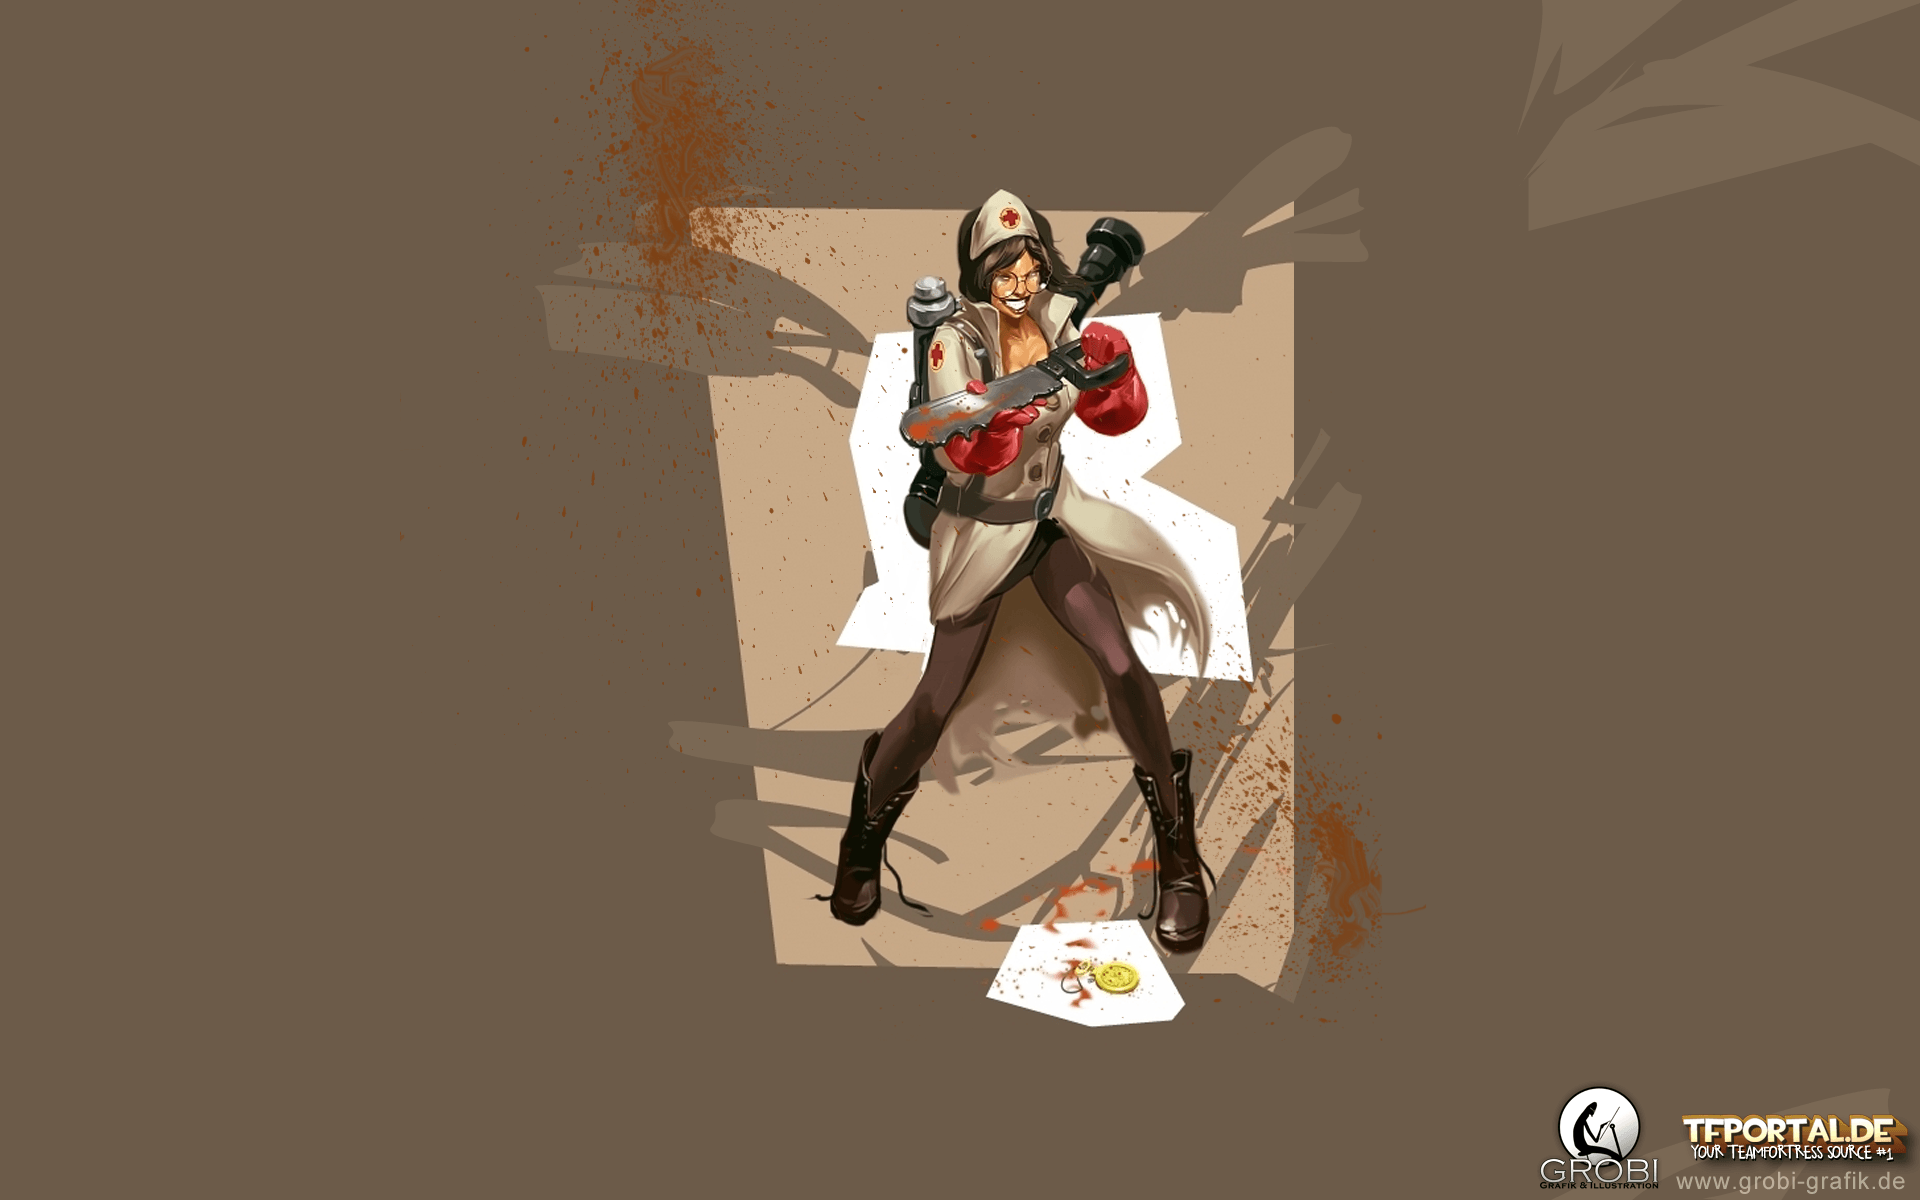 Team Fortress 2 Wallpapers - Wallpaper Cave